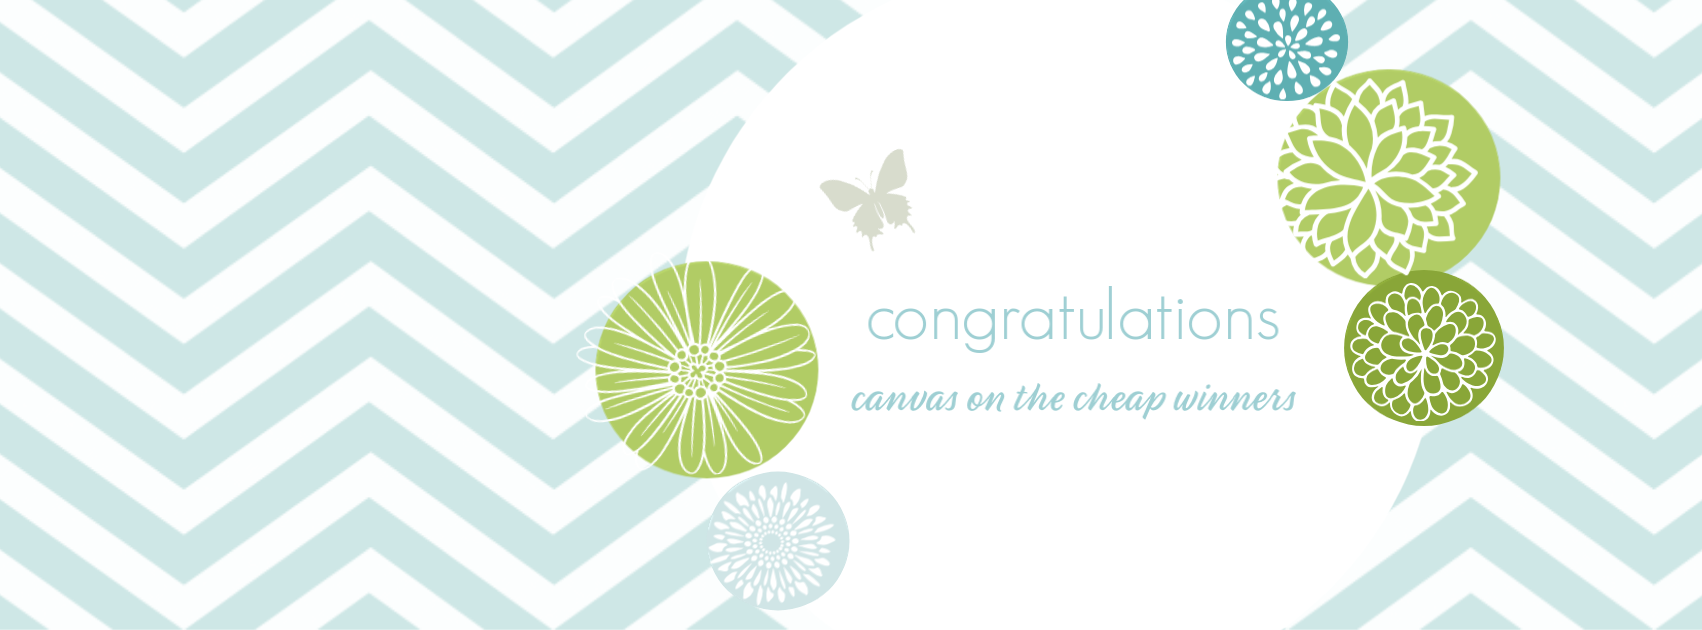 Congratulations Canvas on the Cheap Winners {living outside the stacks}